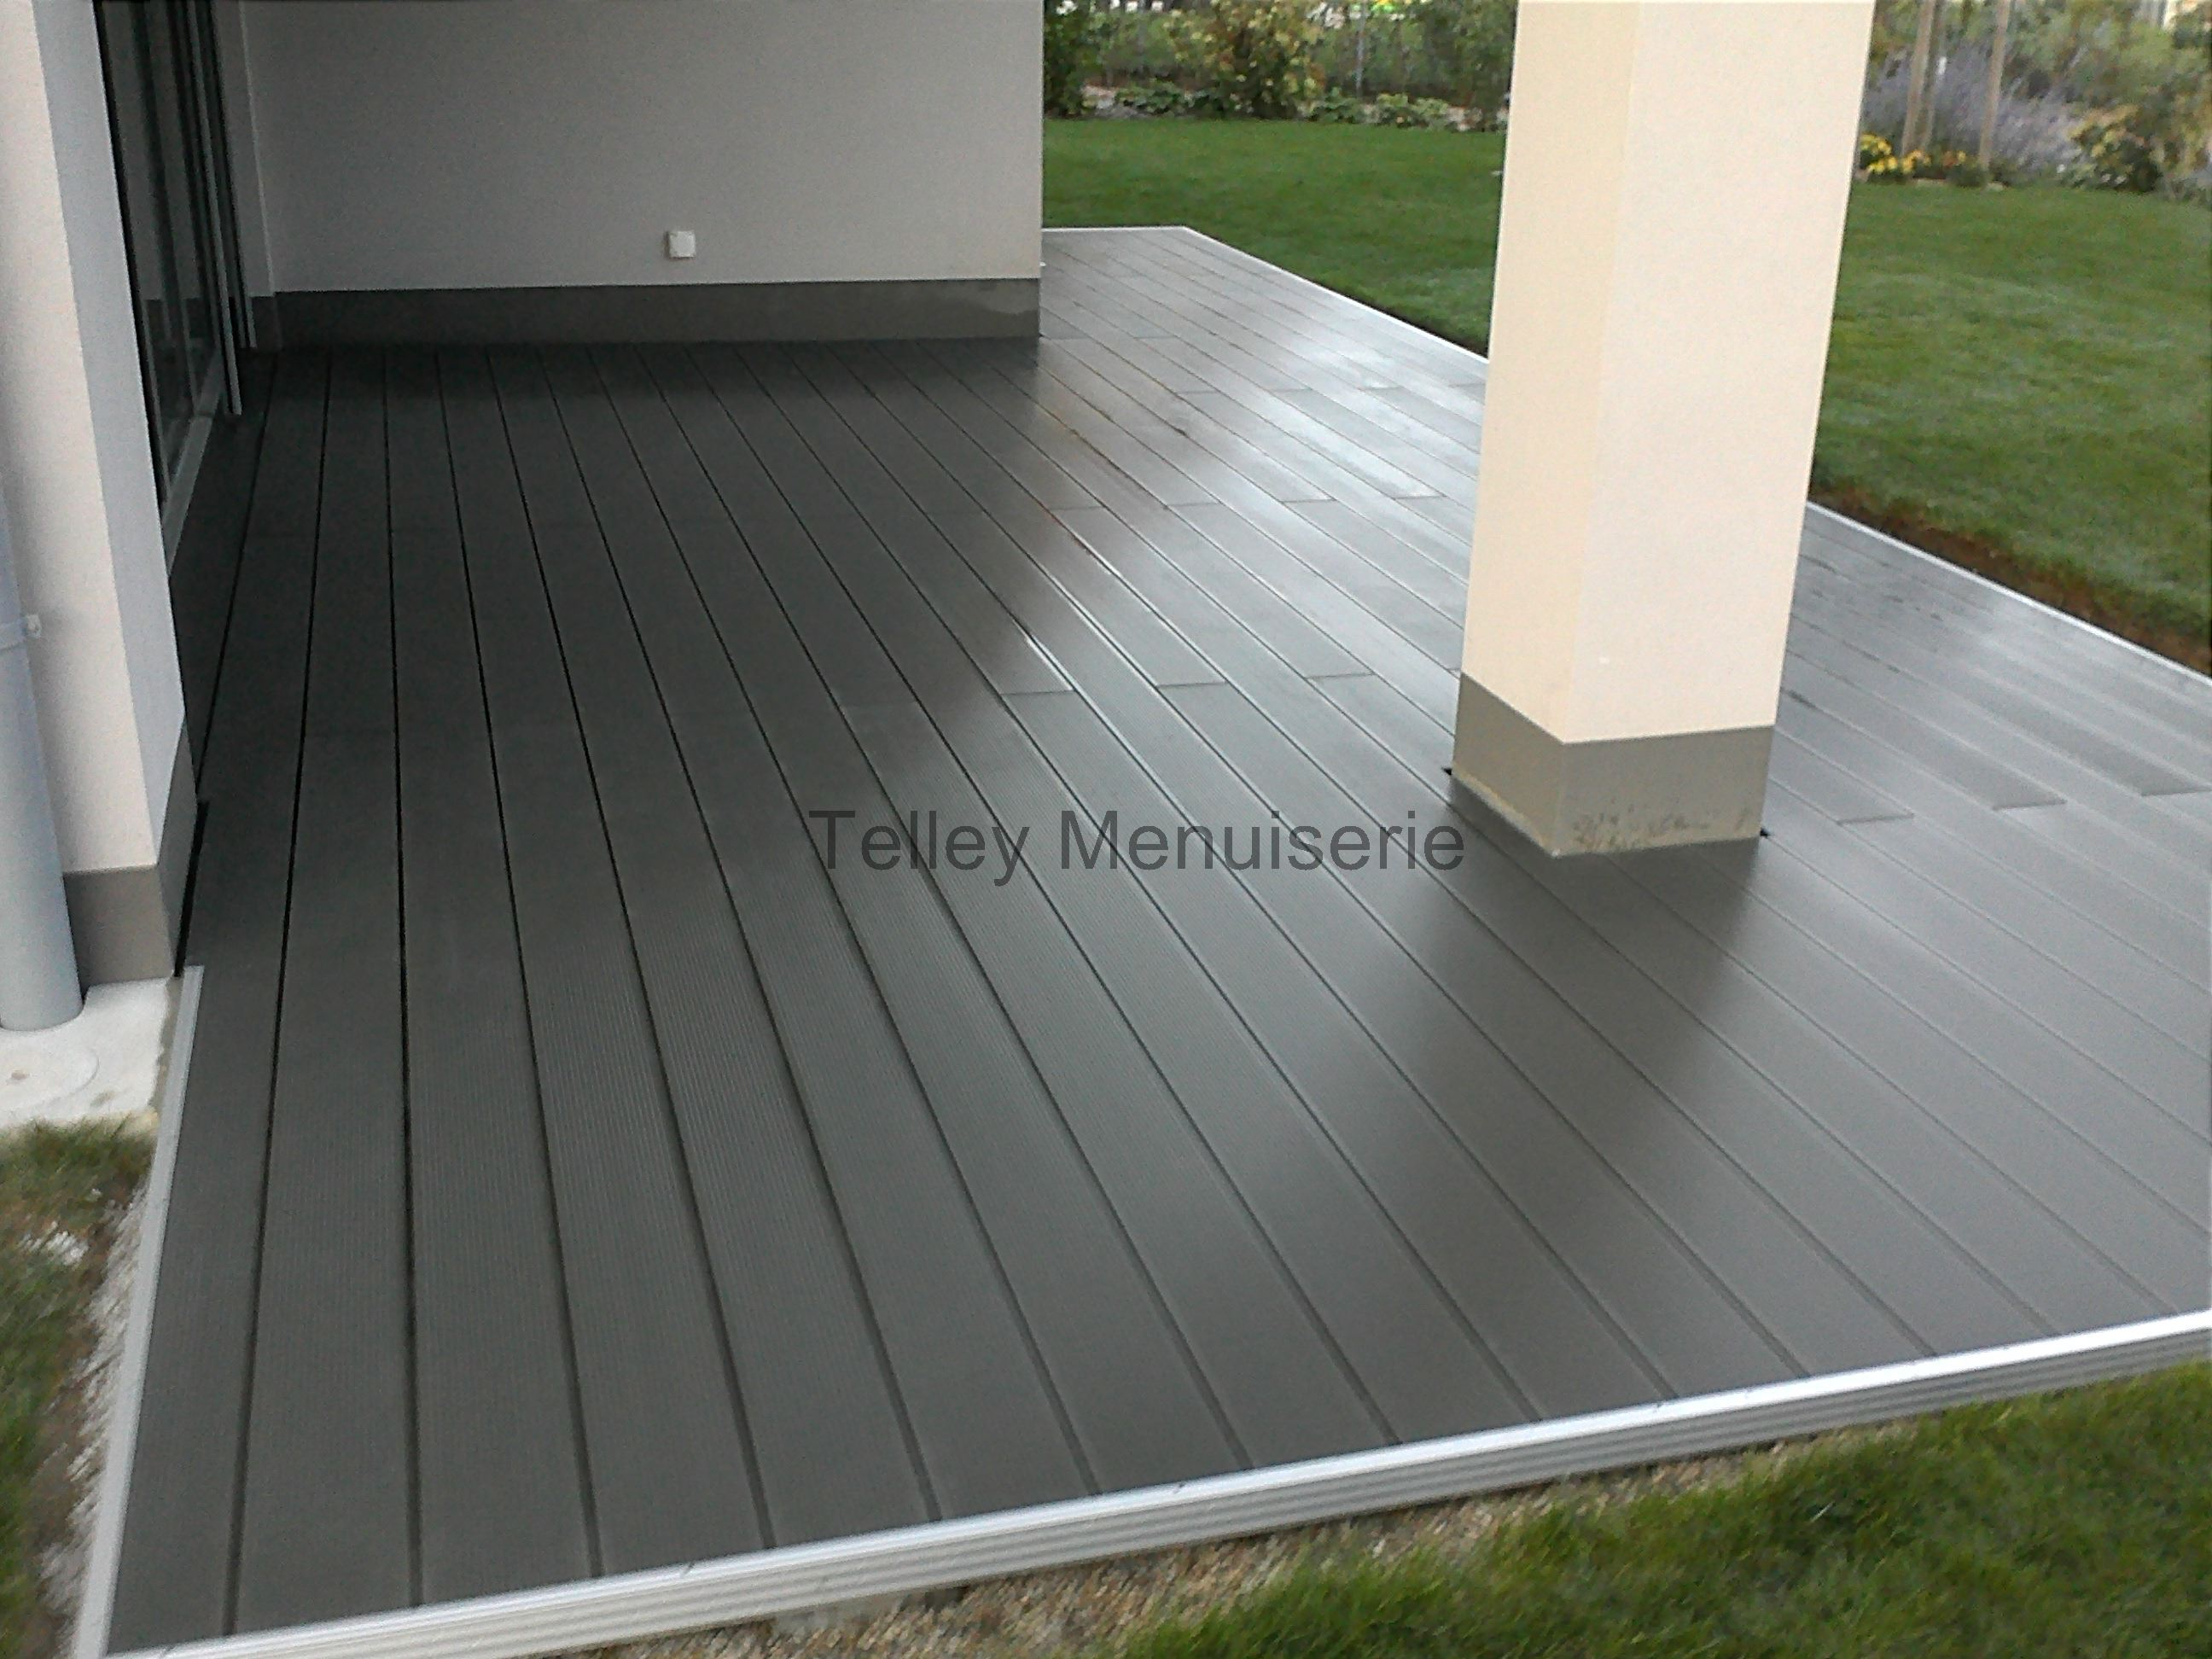 Plancher terrasse am nagement ext rieur menuiserie telley for Plancher exterieur